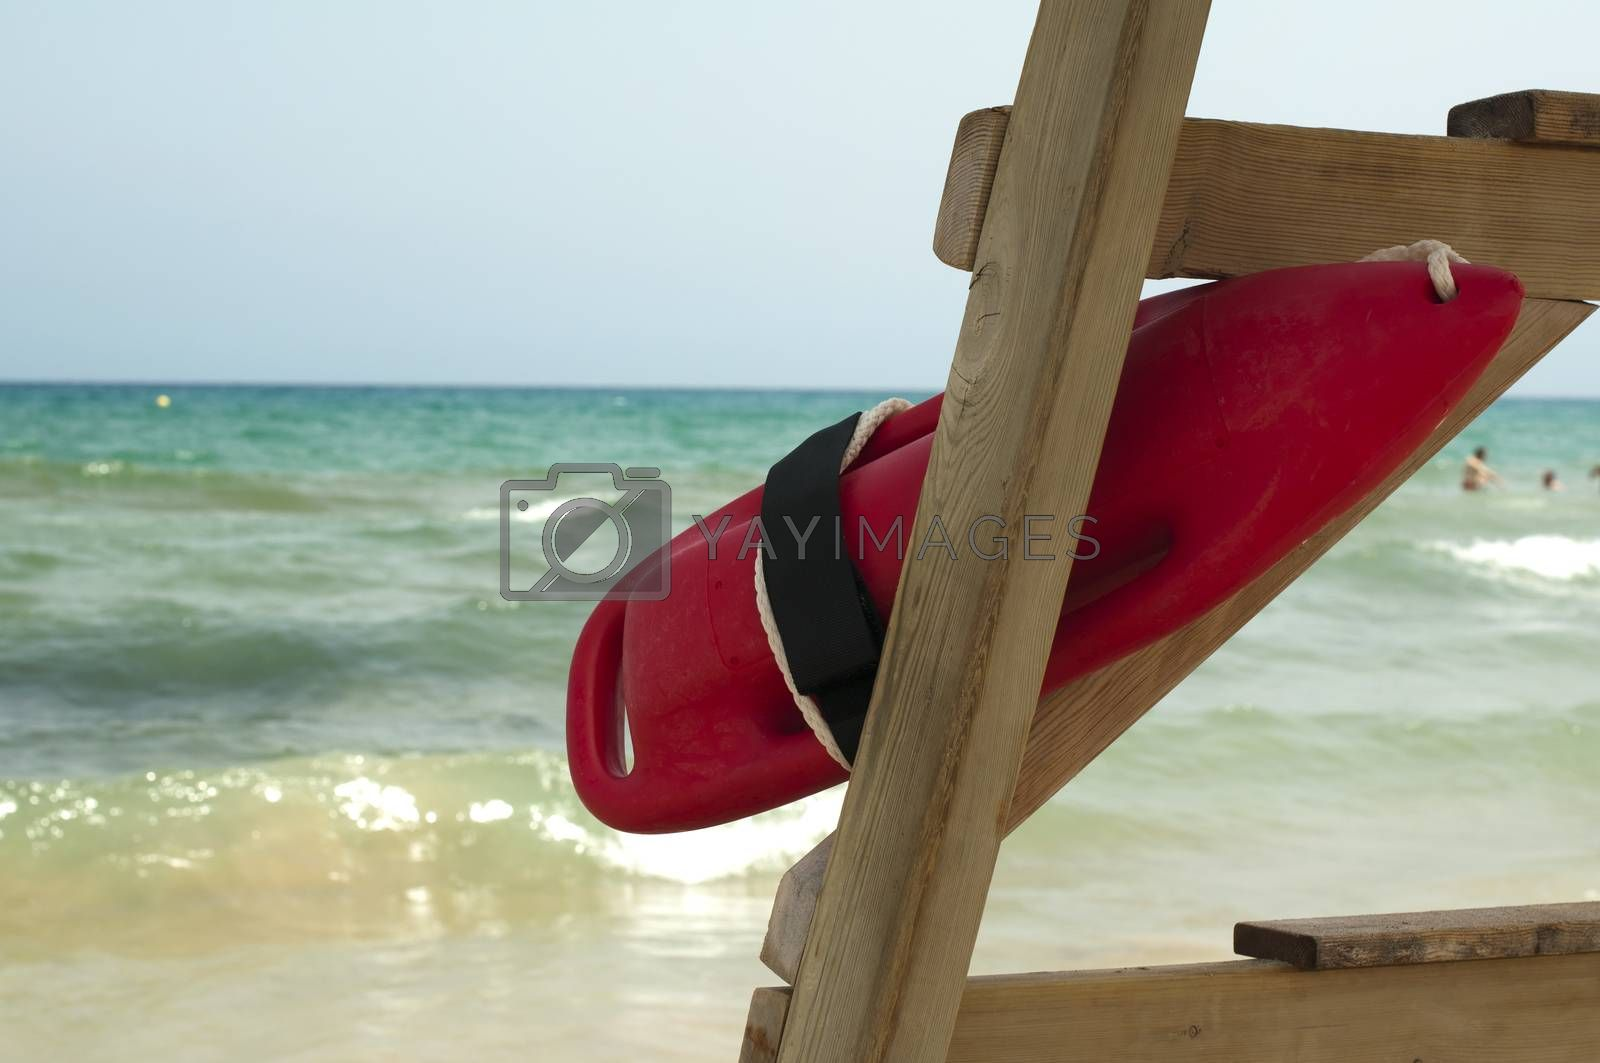 Red buoy for a lifeguard to save people  by Georgiev